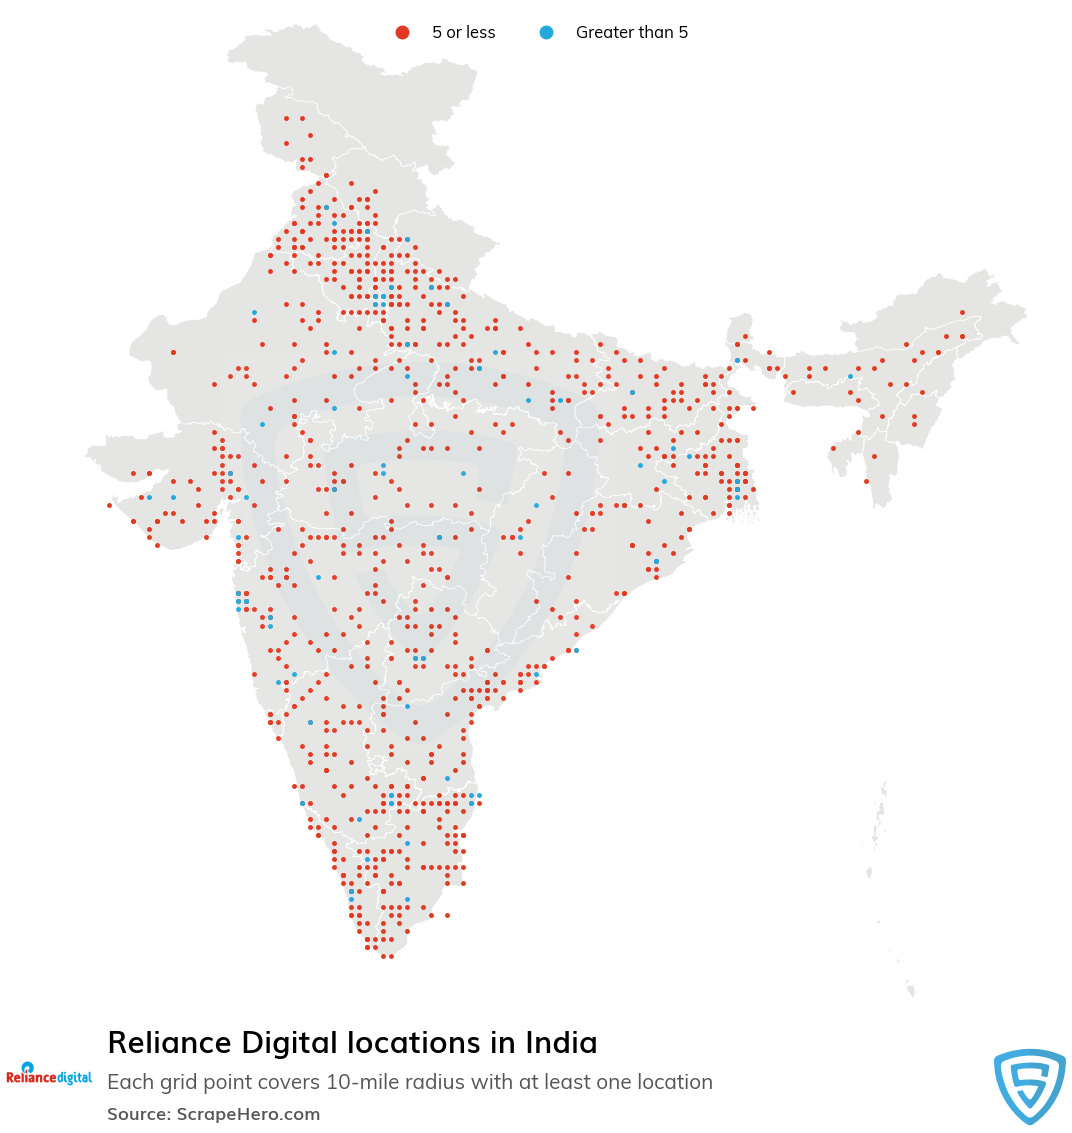 Map of Reliance Digital locations in India in 2021